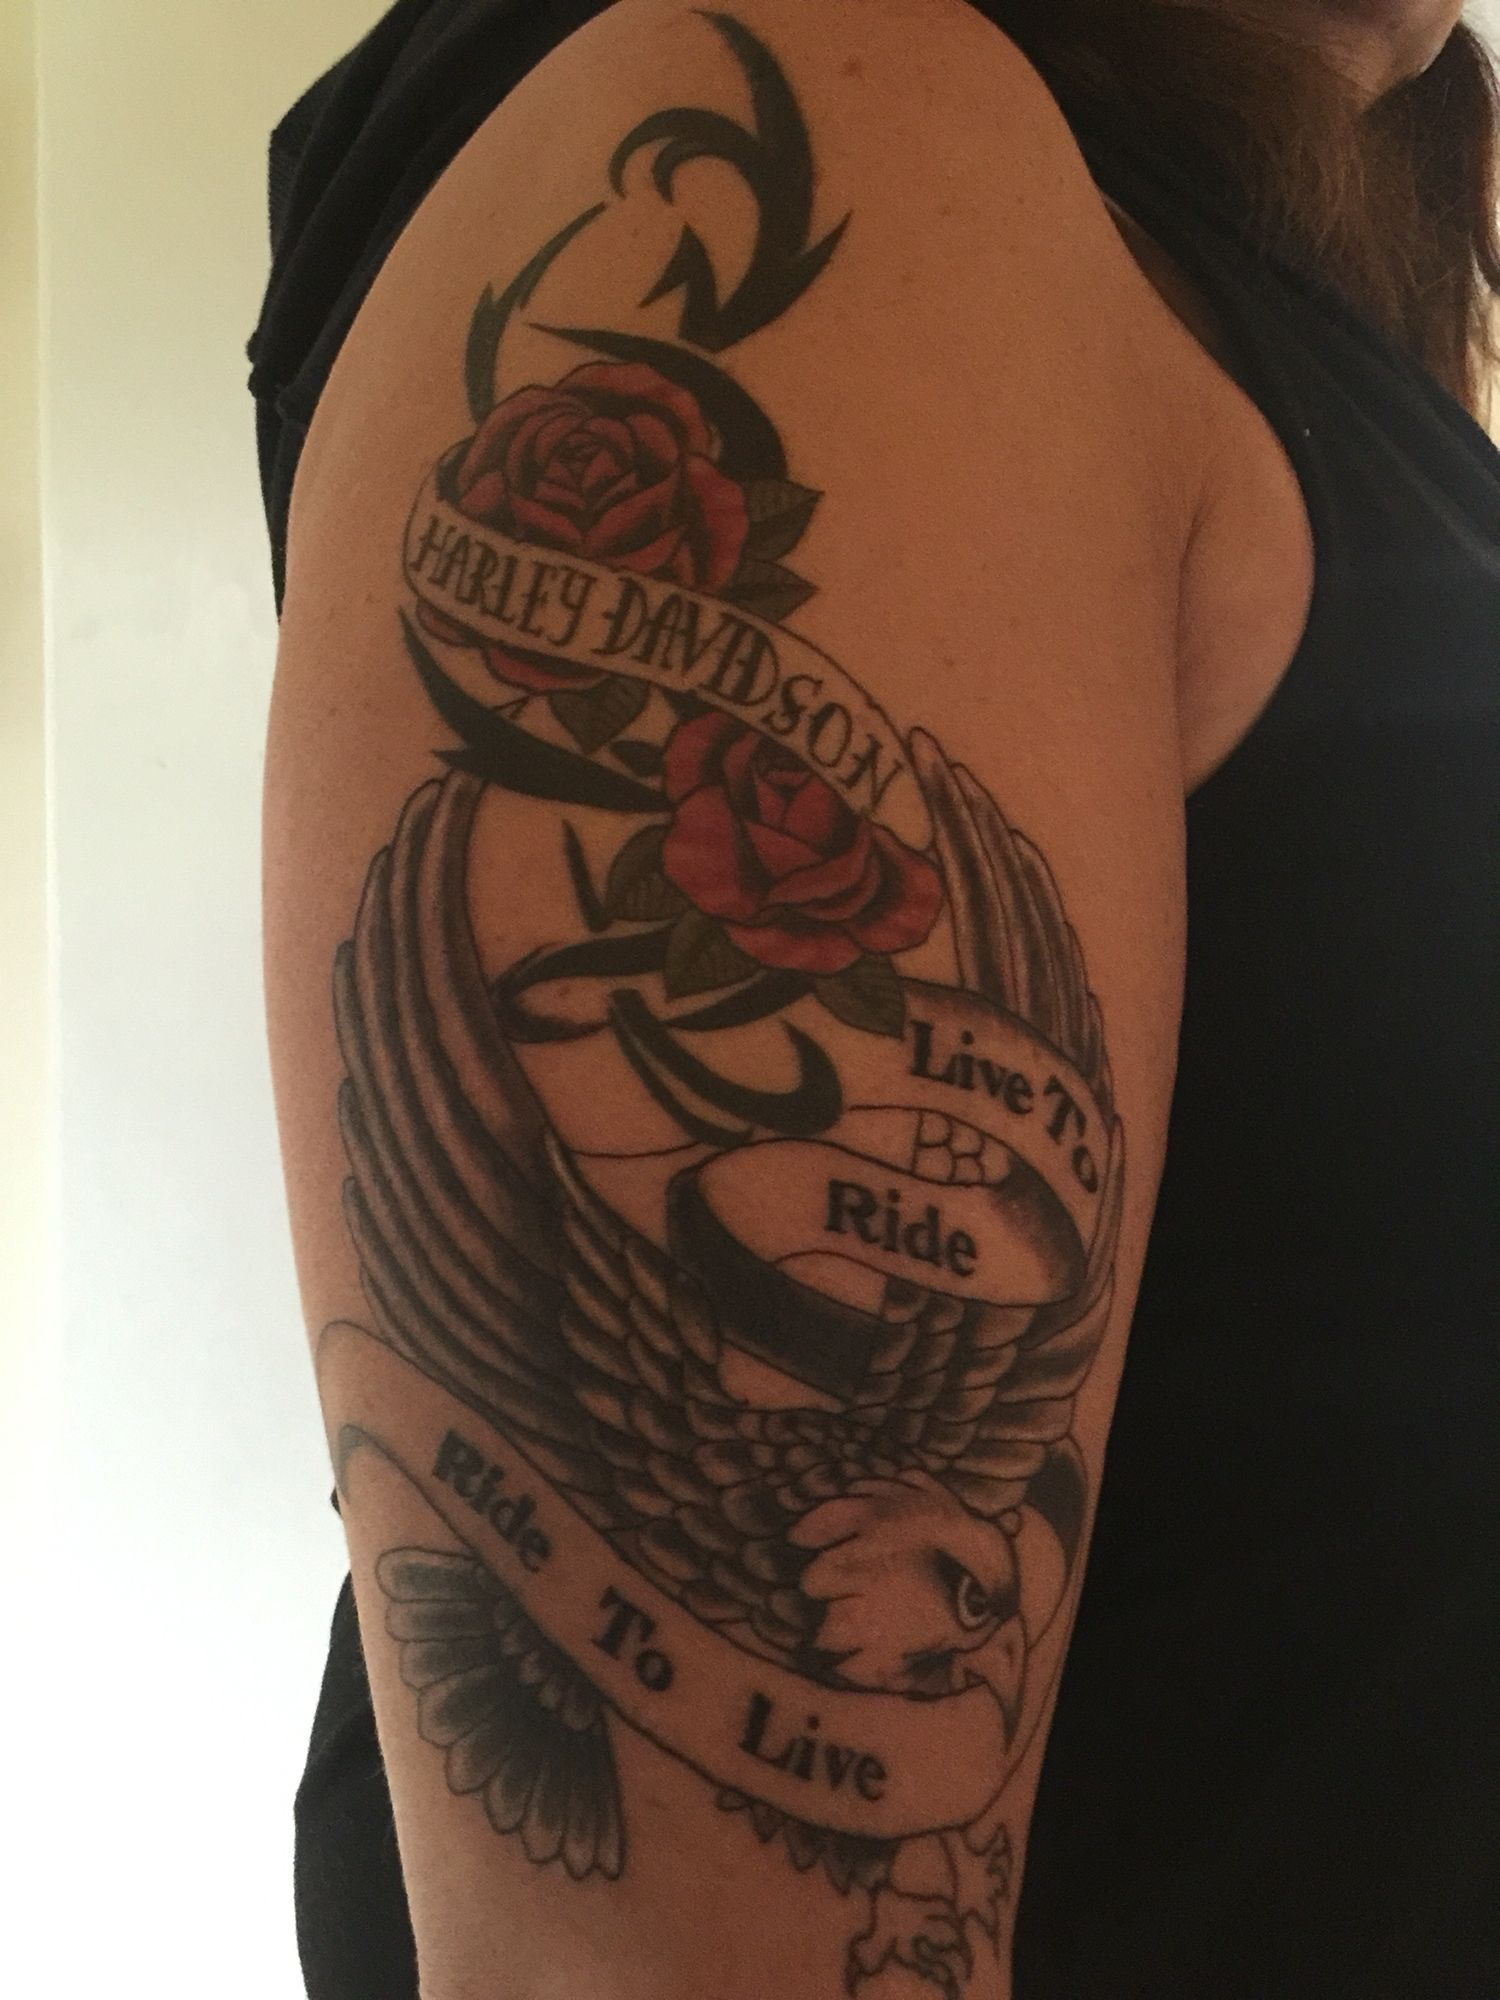 Harley Davidson Tattoo Live To Ride Ride To Live Harley Ink